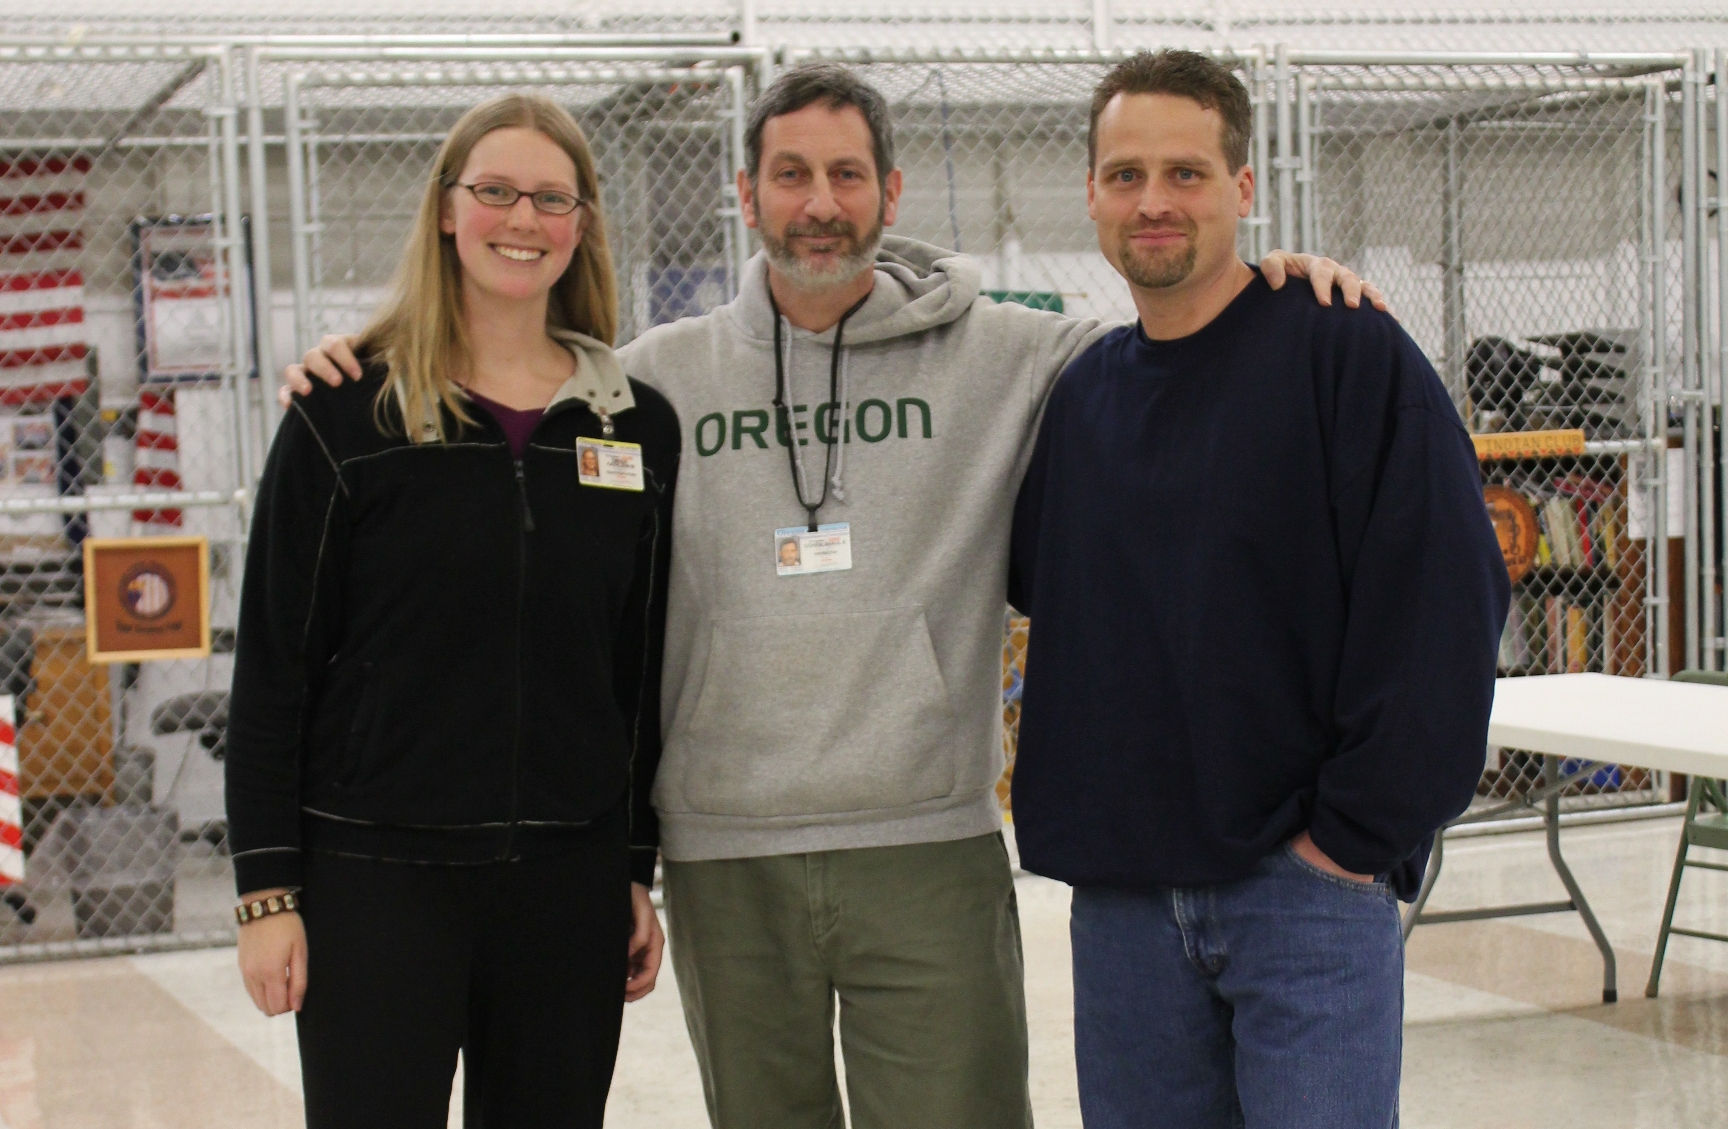 """Photo of teaching team for a prison class in Oregon (me, a professor, and an """"inside"""" teaching assistant)"""